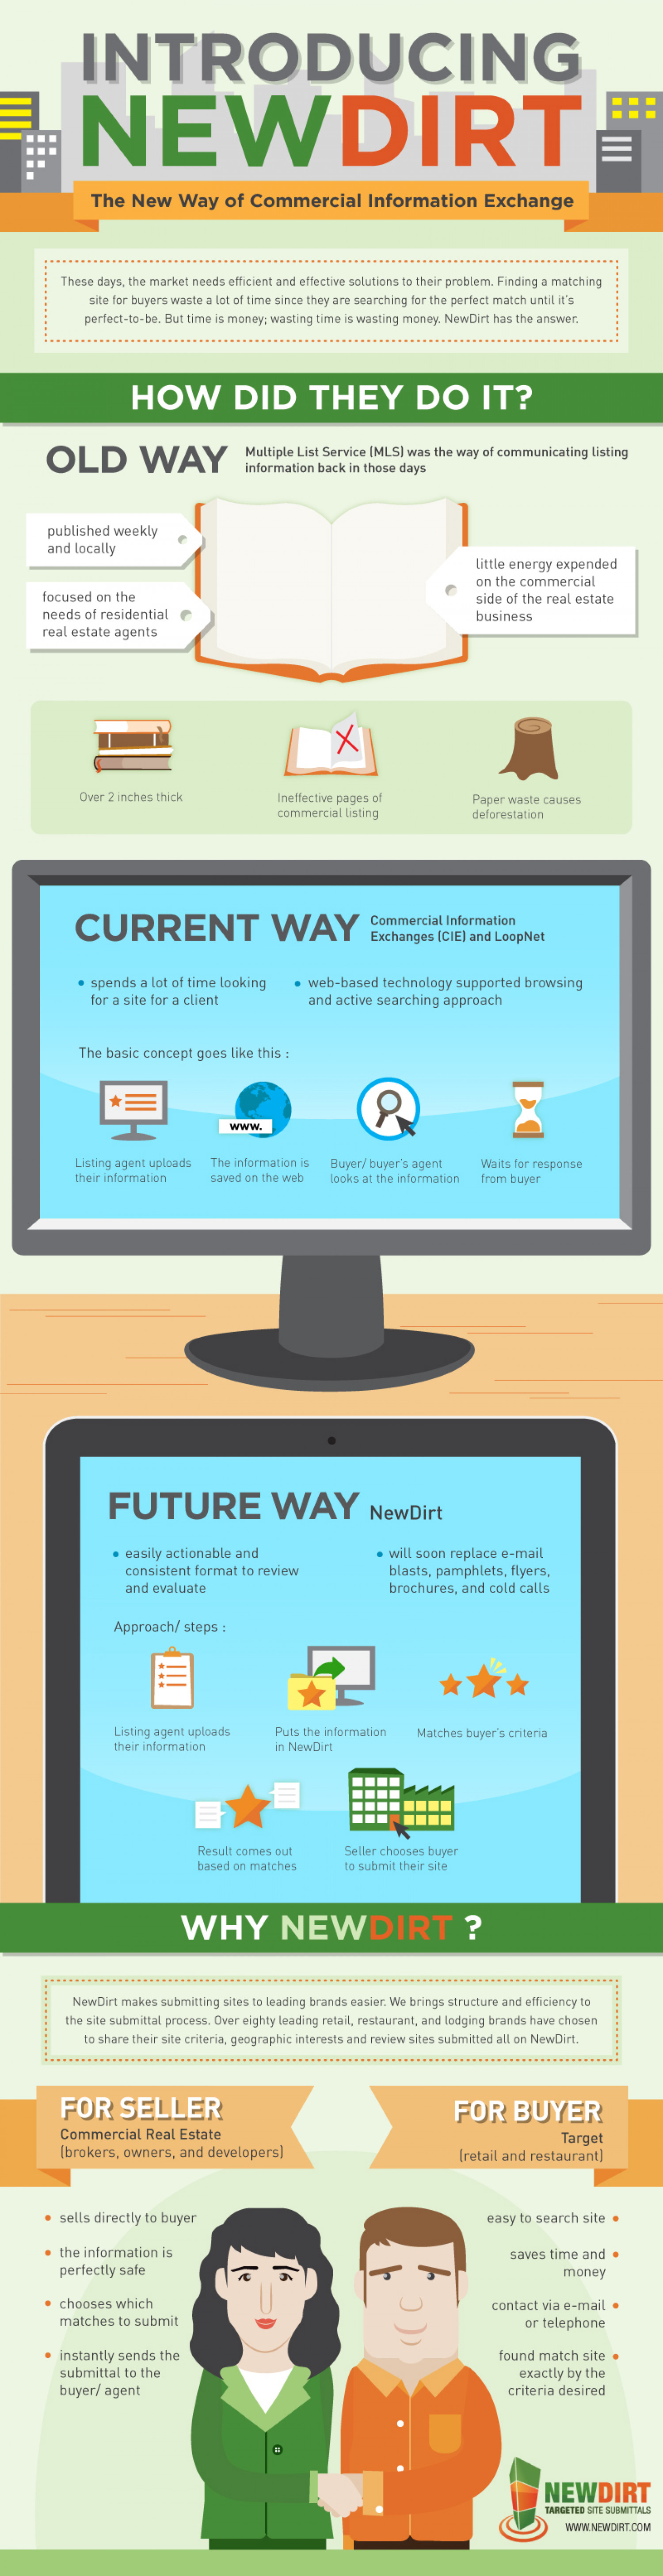 The New Way of Commercial Information Exchange Infographic